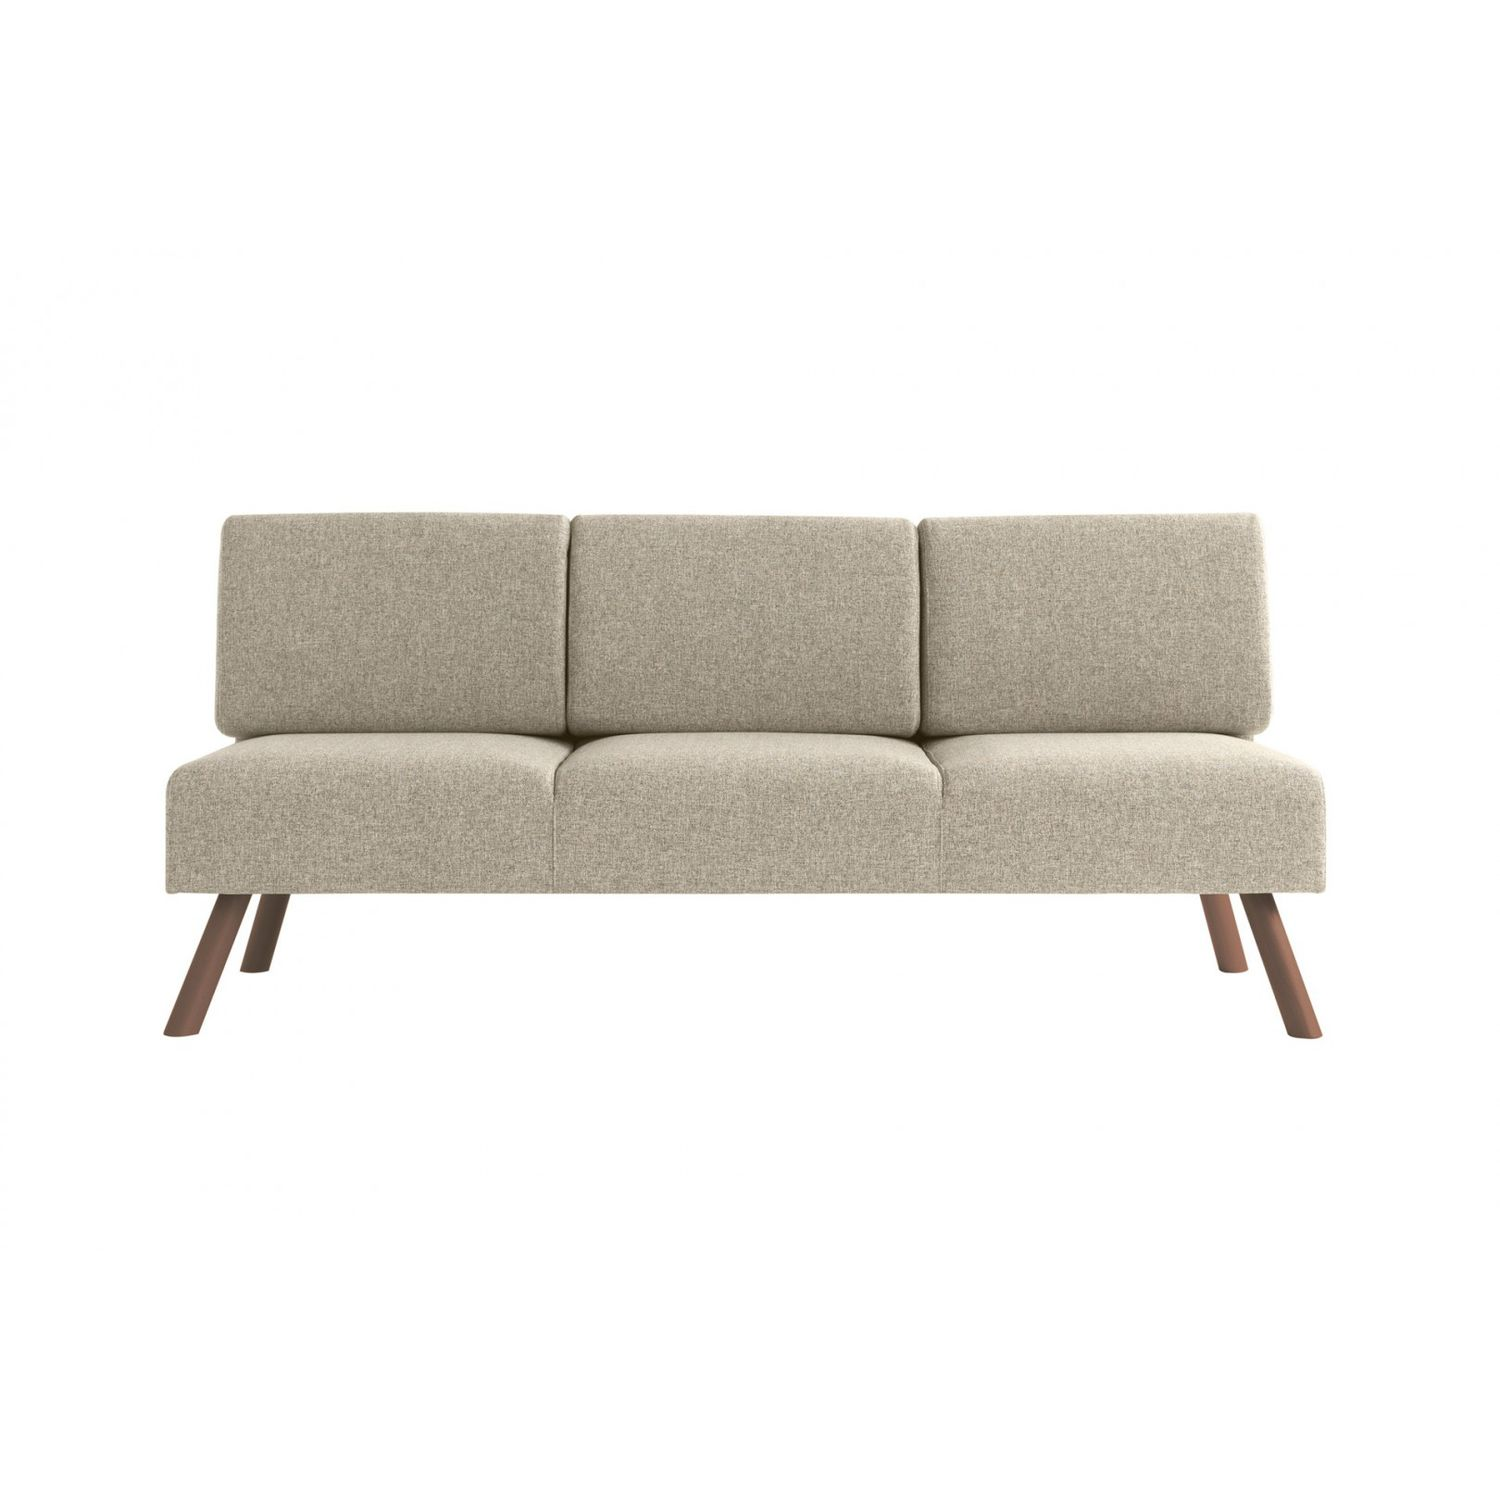 Contemporary Sofa Fabric Wooden 3 Seater Nomad 827